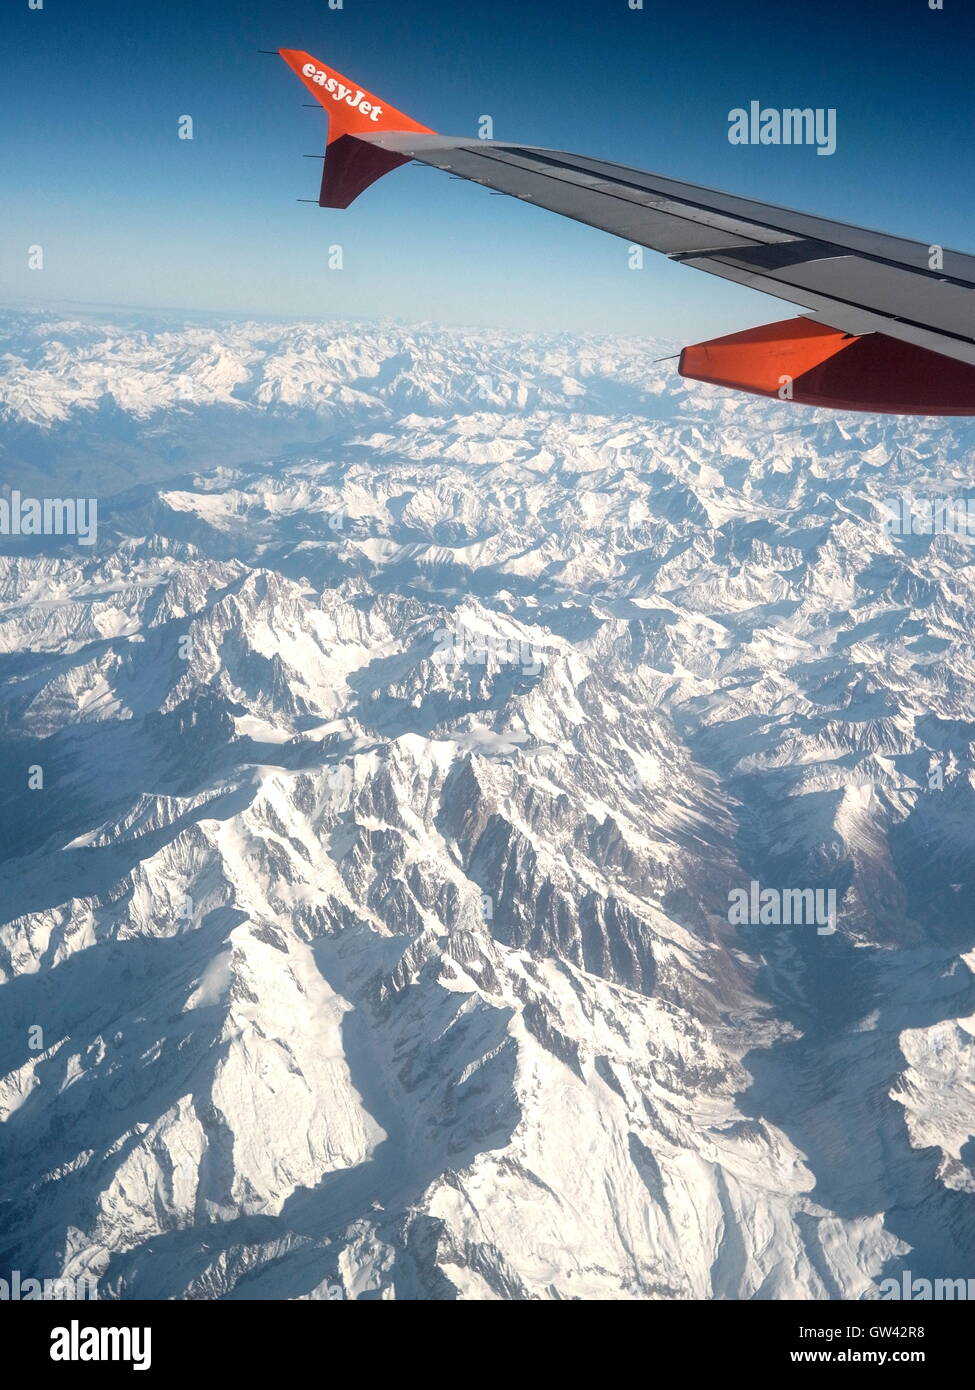 AJAXNETPHOTO. 2015. AIRBORNE, EUROPE. - AIRCRAFT DESIGN - WINGLETS ON THE TIP OF PORT WING OF AN EASY JET PASSENGER - Stock Image